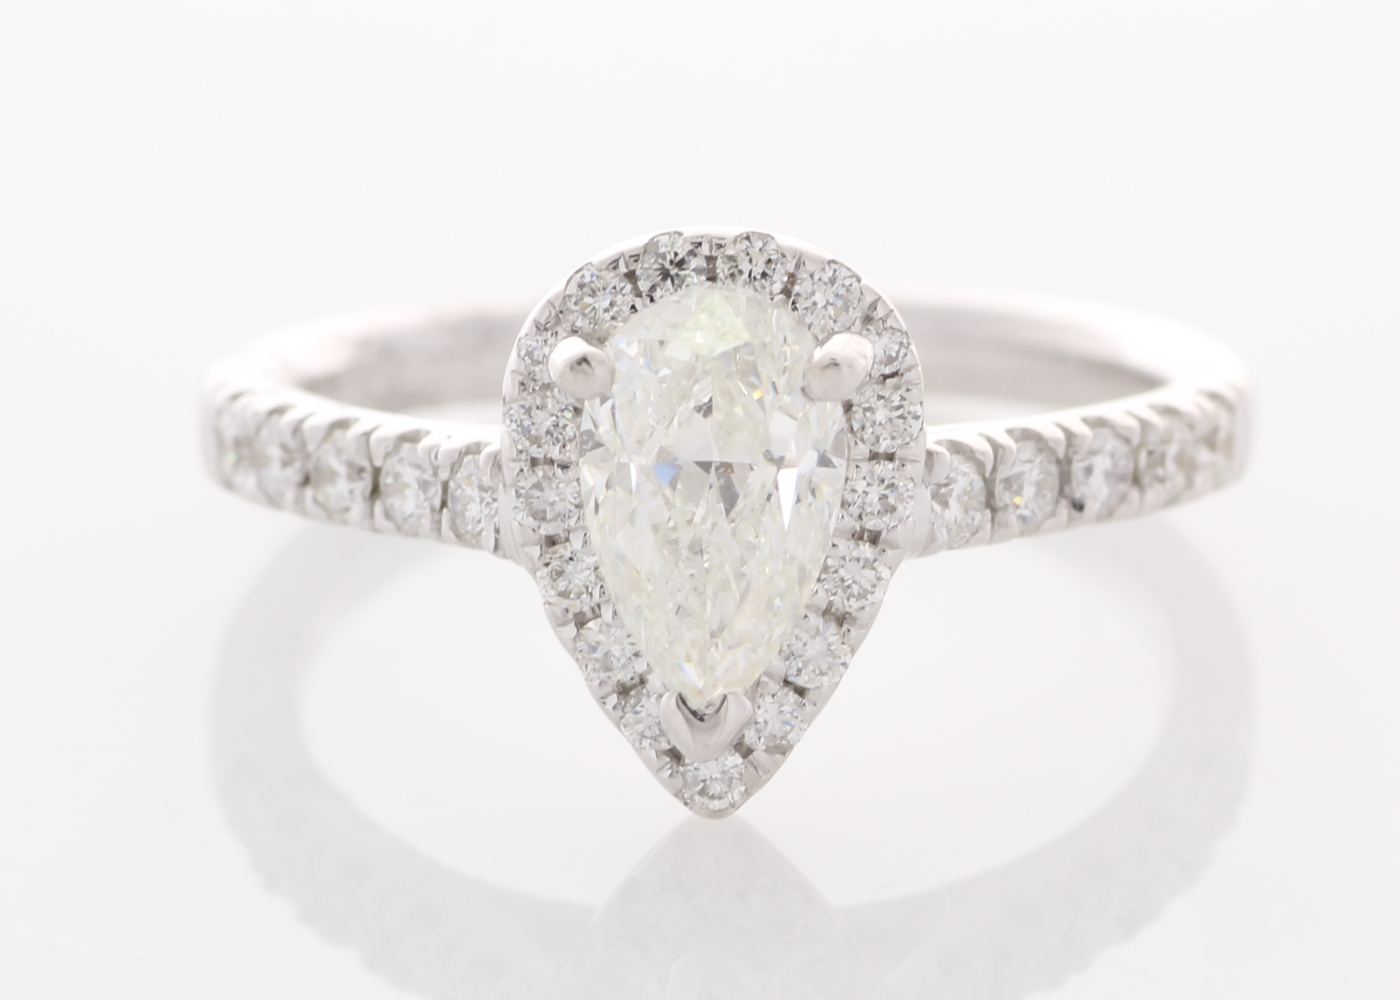 Lot 50 - 18ct White Gold Single Stone With Halo Setting Ring 1.23